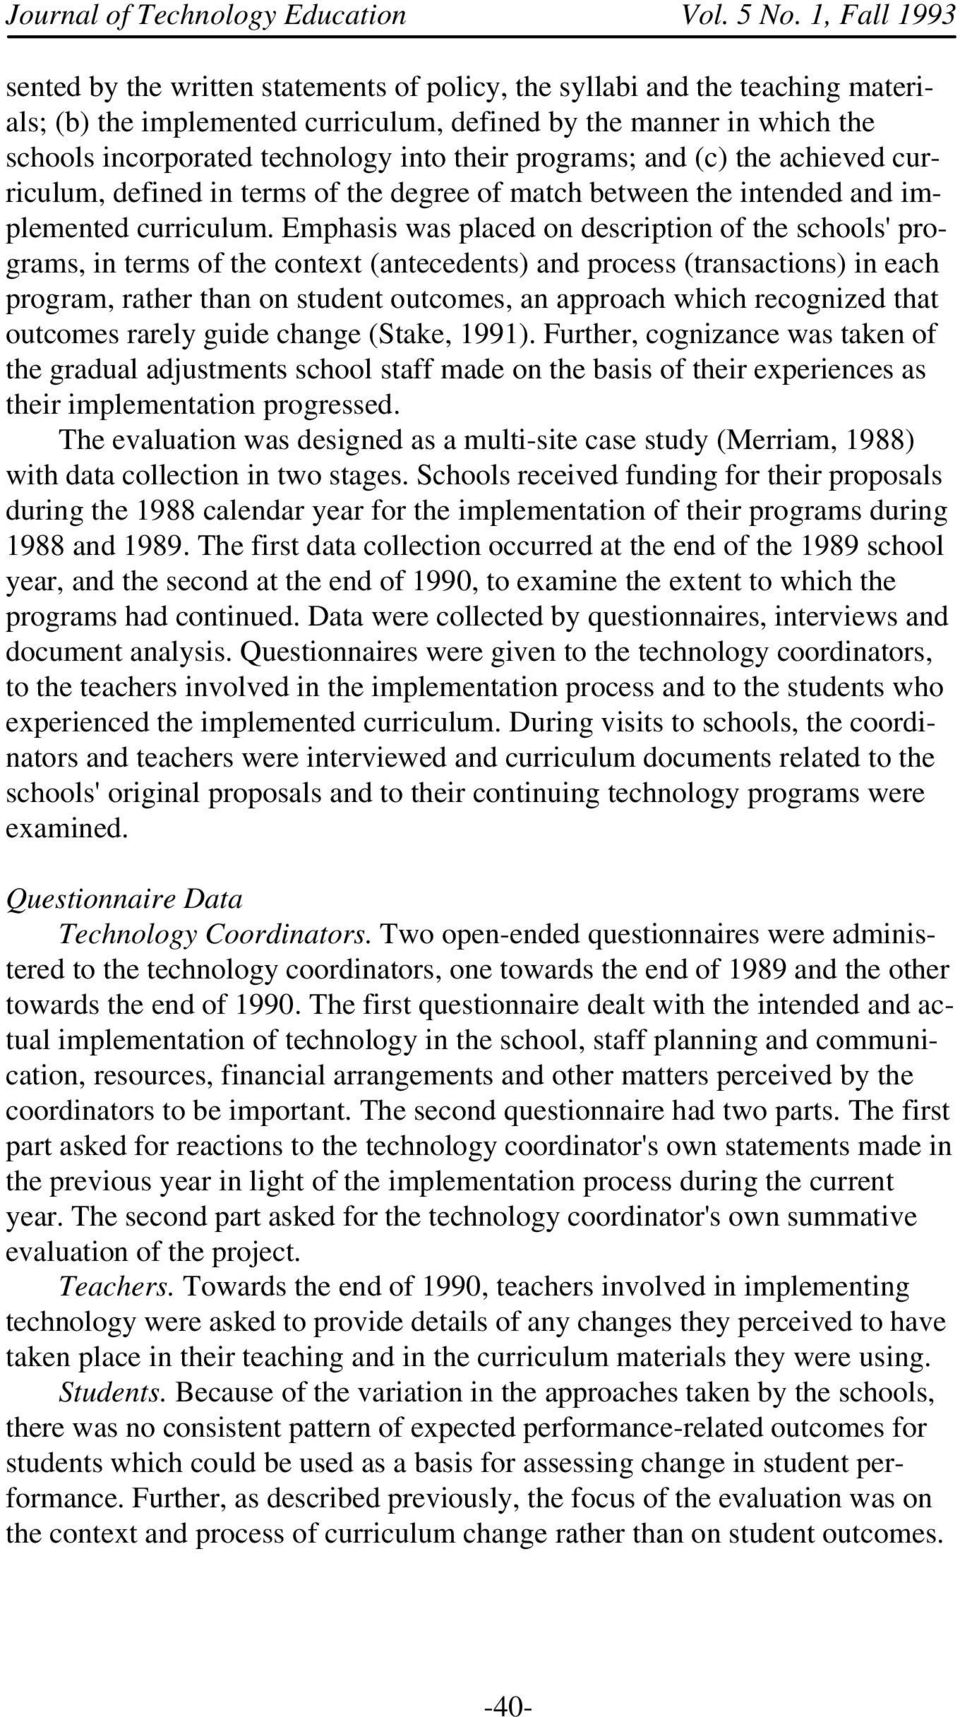 Emphasis was placed on description of the schools' programs, in terms of the context (antecedents) and process (transactions) in each program, rather than on student outcomes, an approach which